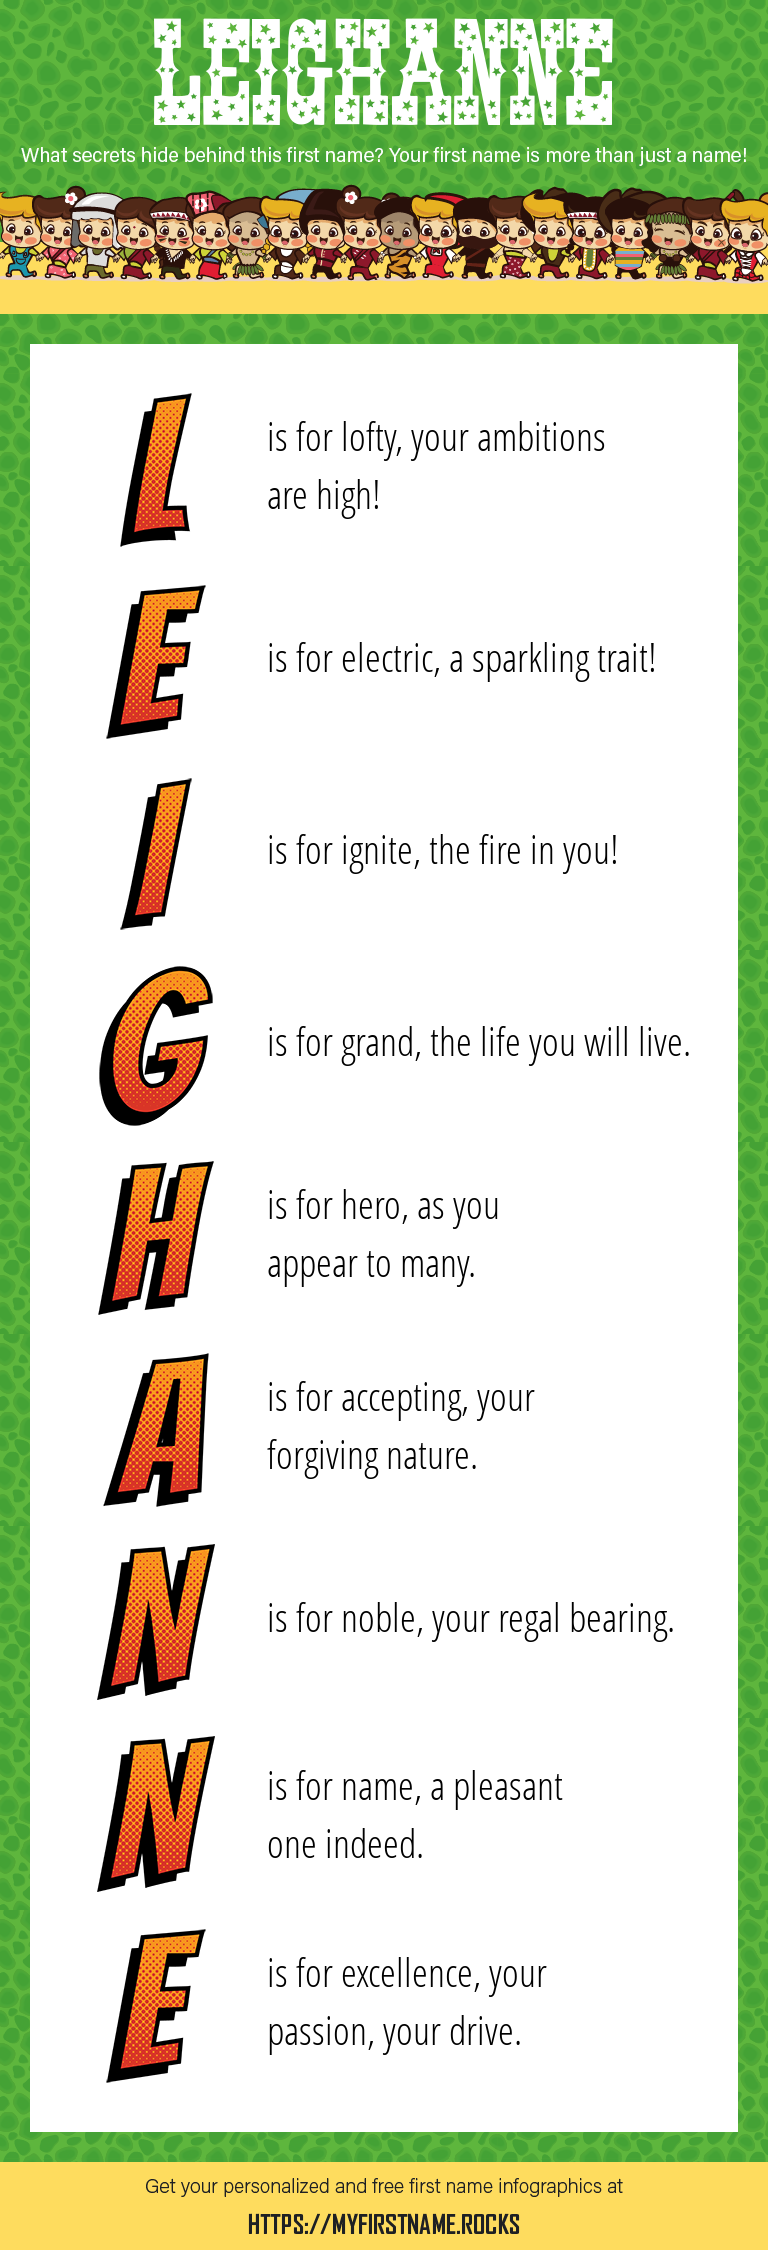 Leighanne Infographics